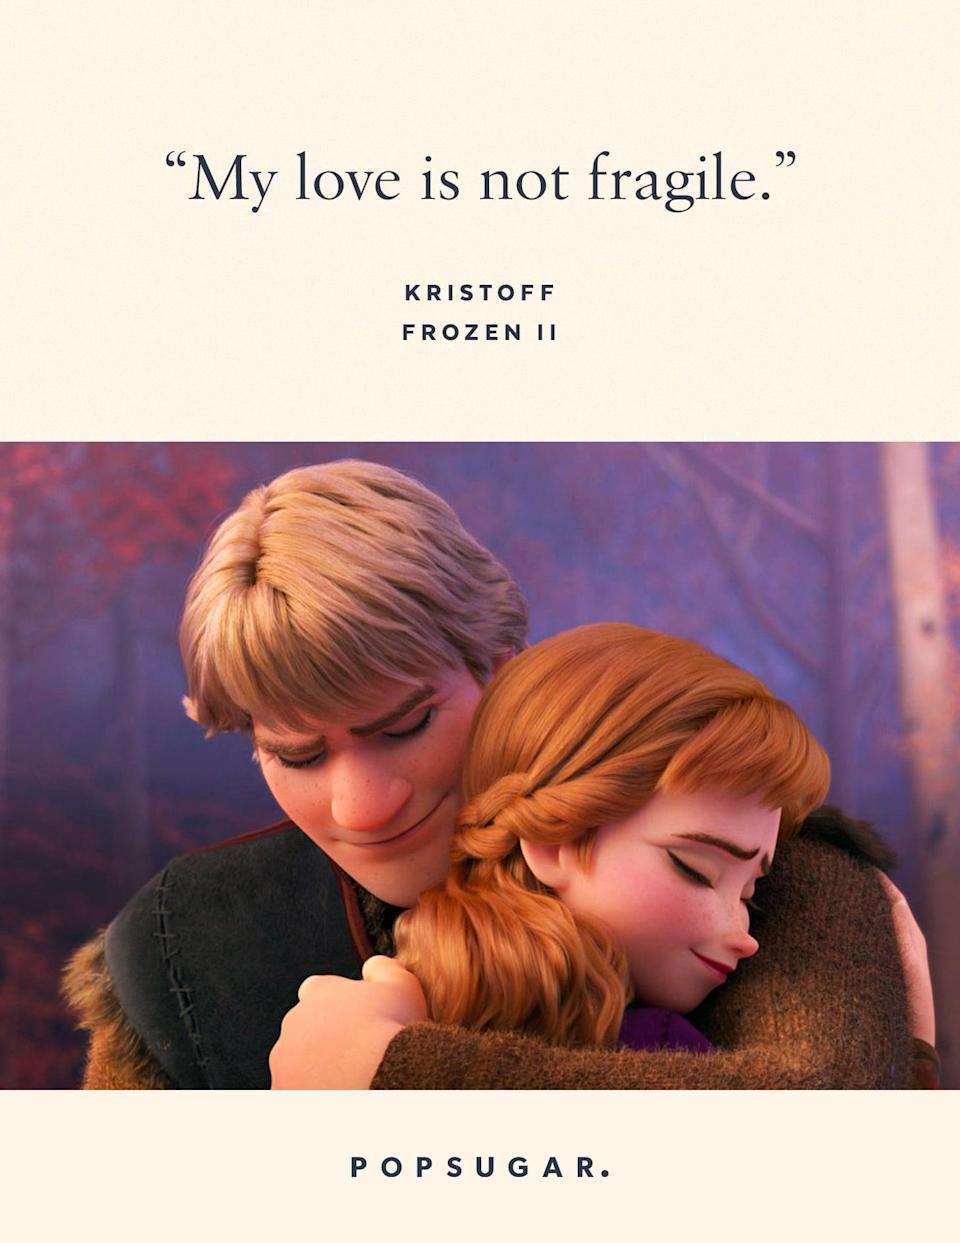 "<p>""My love is not fragile."" - Kristoff, <strong>Frozen 2</strong></p>"